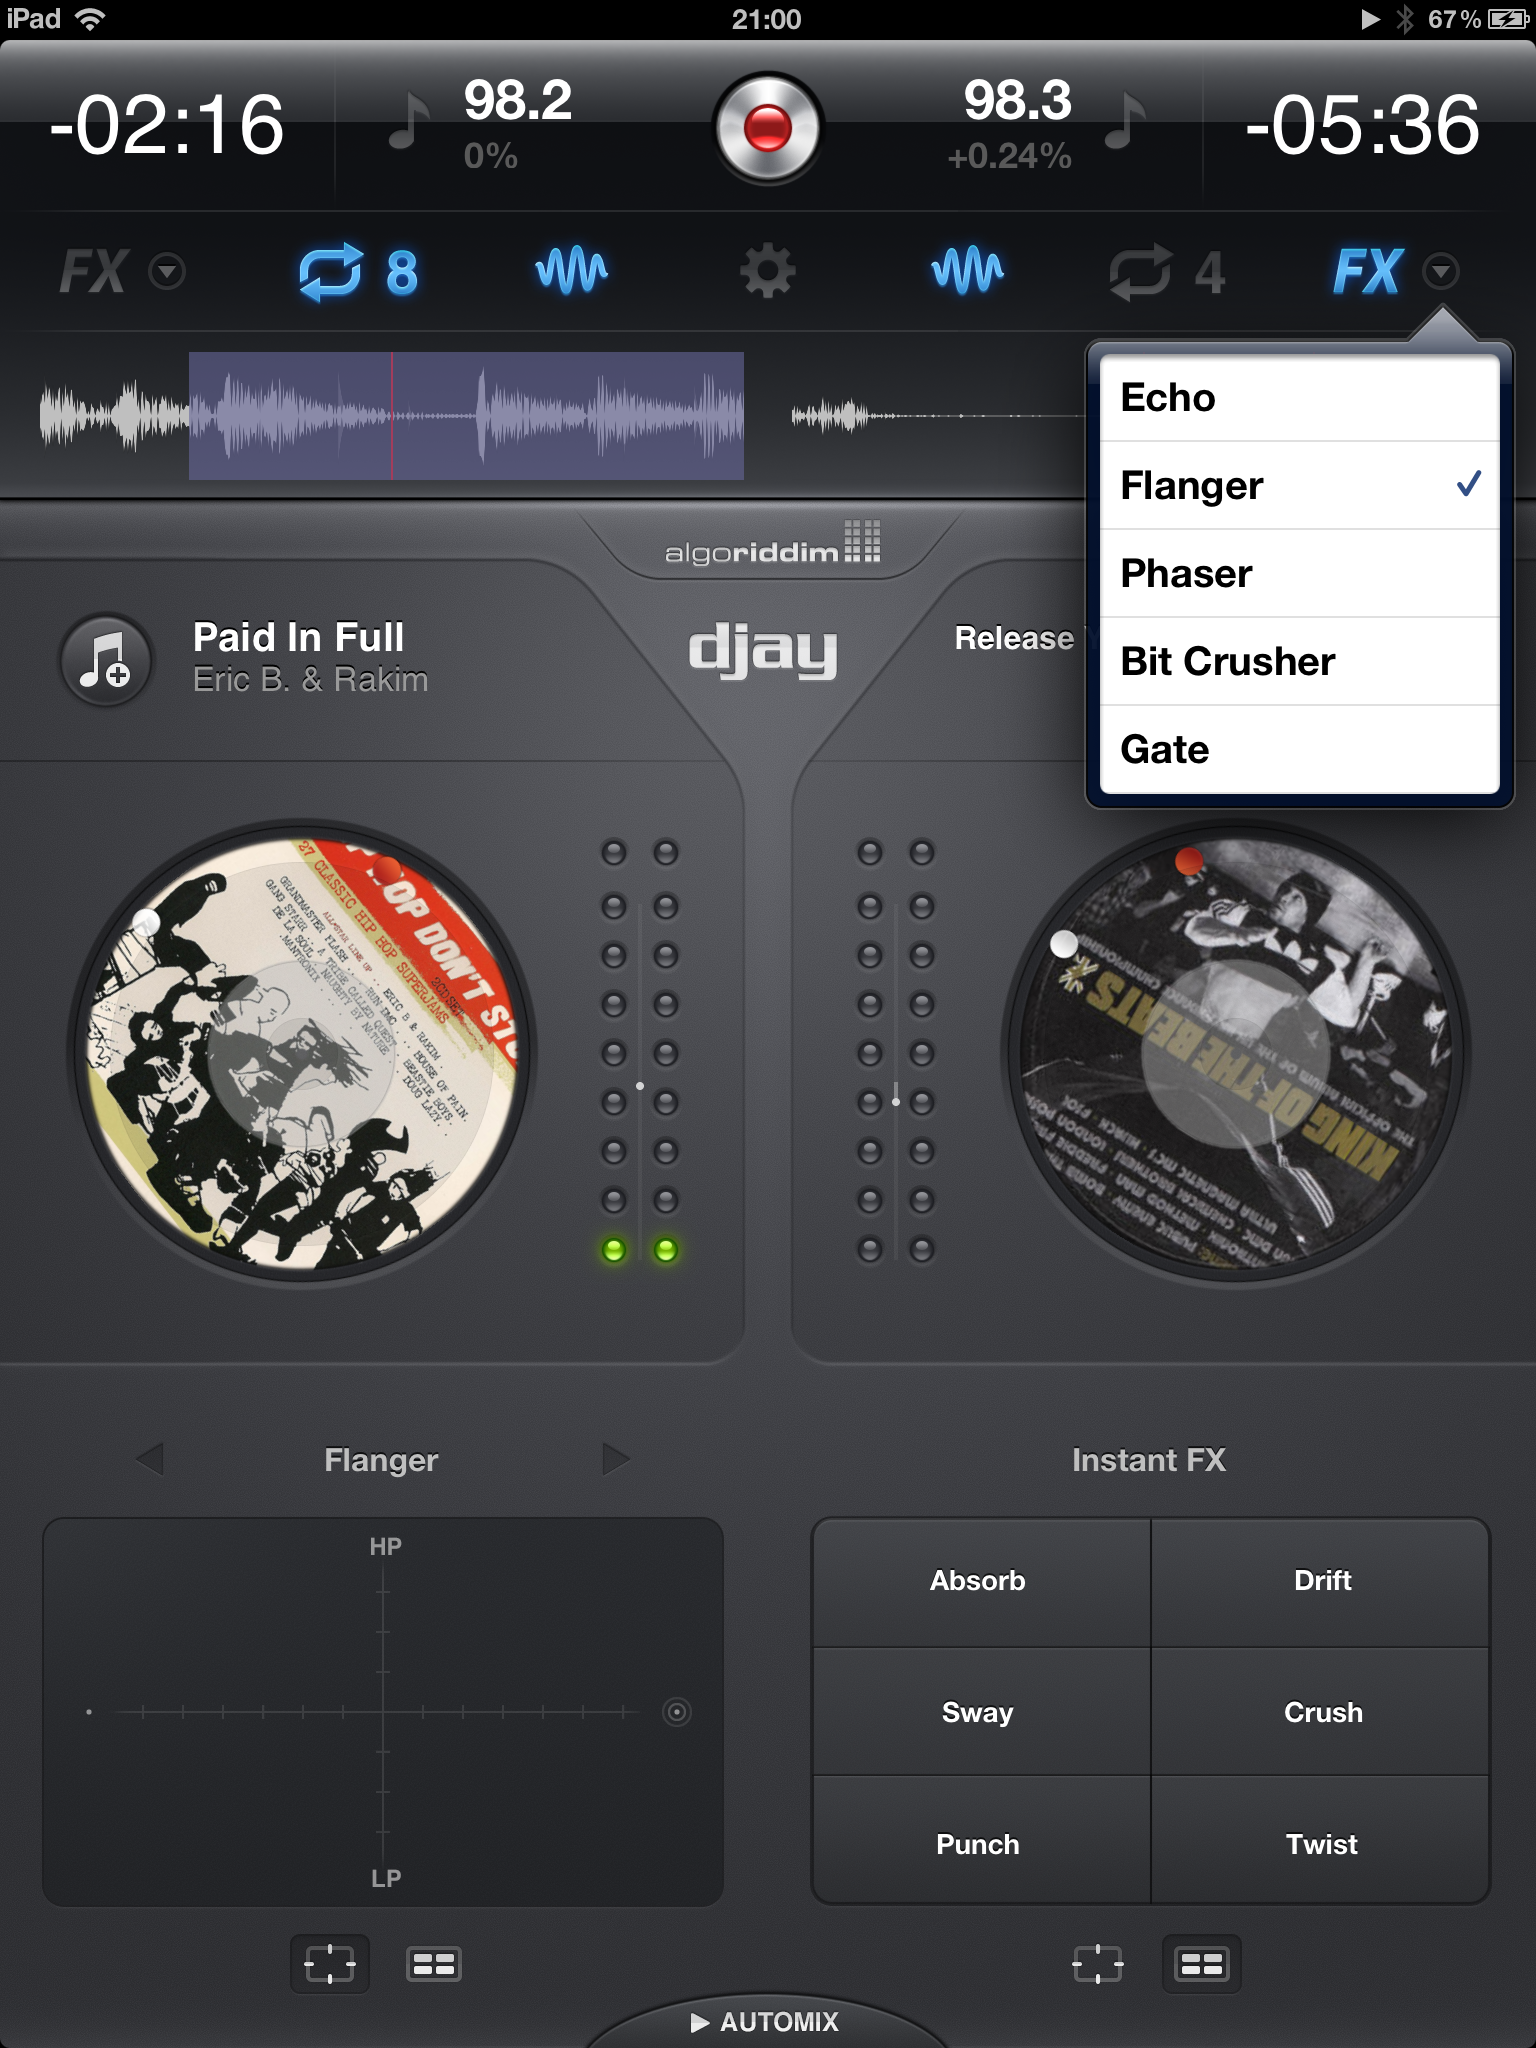 Redesigned djay interface with the iDJ Pro